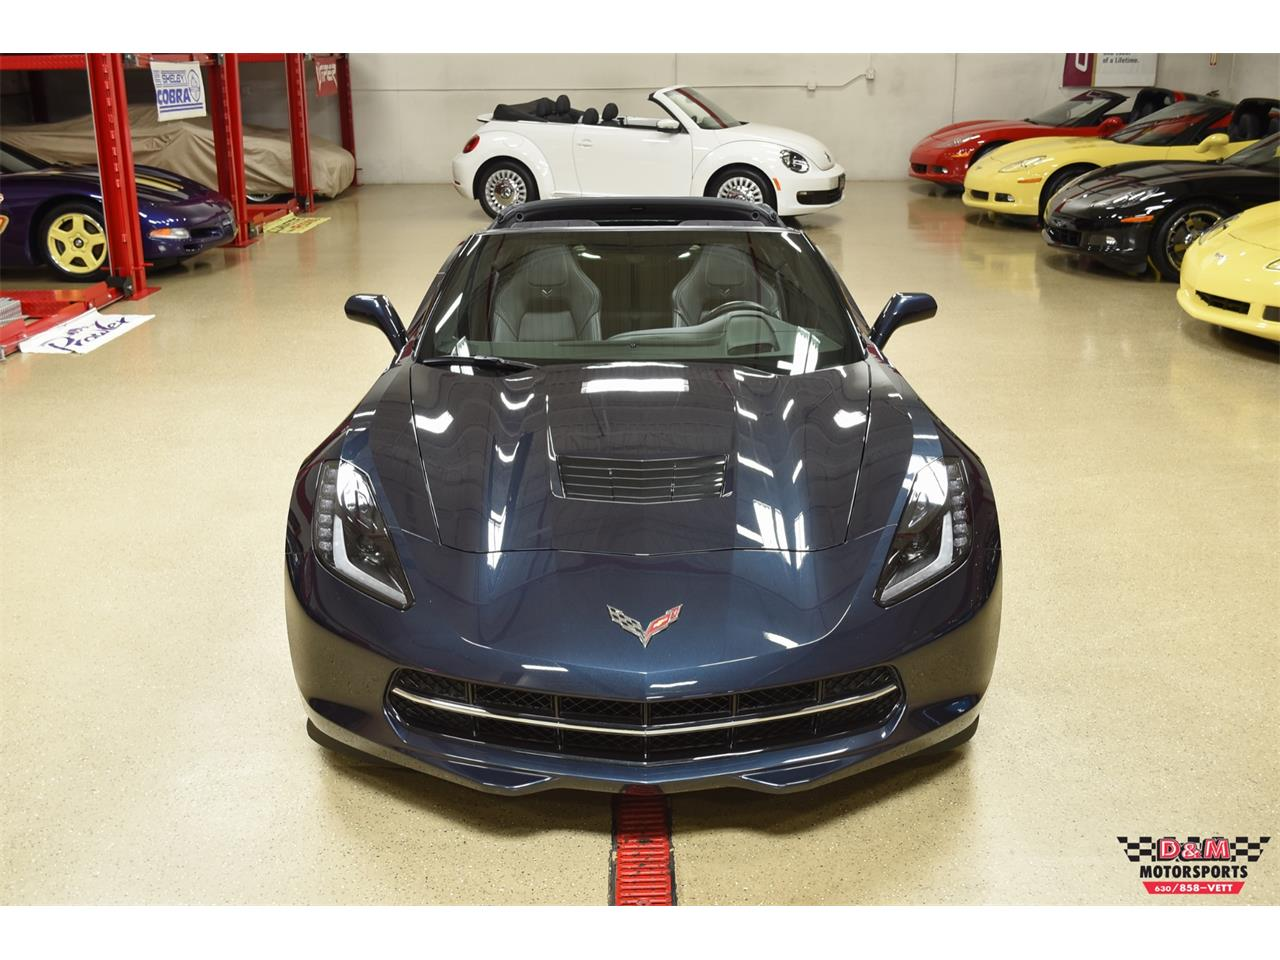 Large Picture of 2015 Corvette located in Glen Ellyn Illinois - $45,995.00 Offered by D & M Motorsports - QGAK